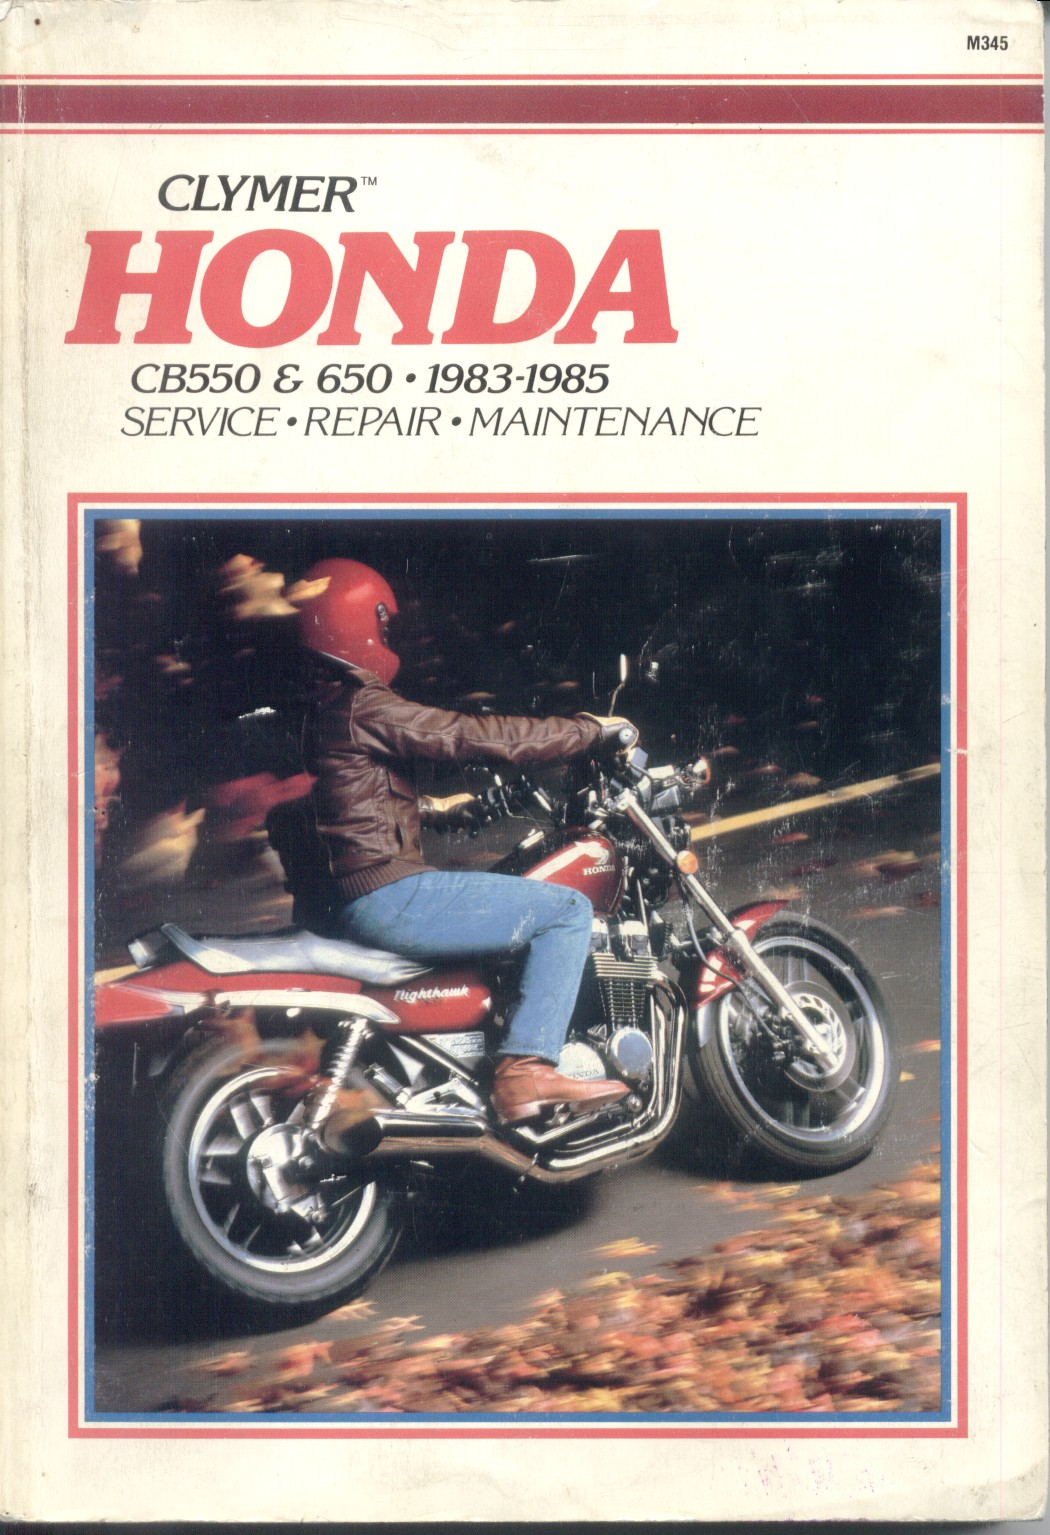 Workshop manual for Honda CB650 (1983-1985)